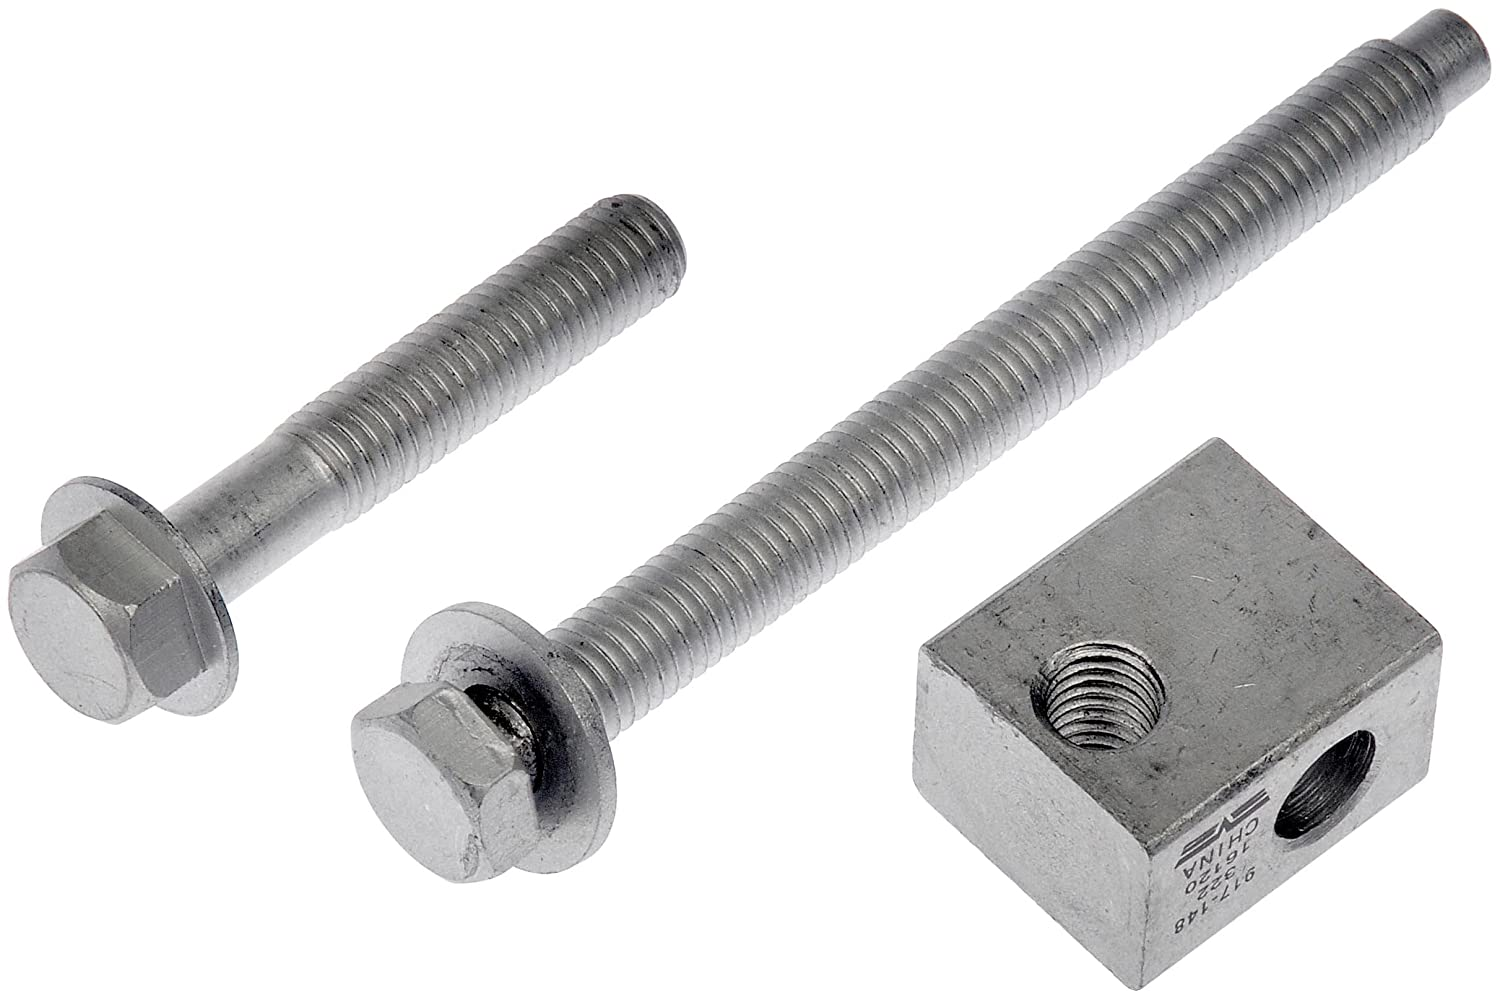 Dorman 917-148 Idler Pulley Adjuster Bolt Kit